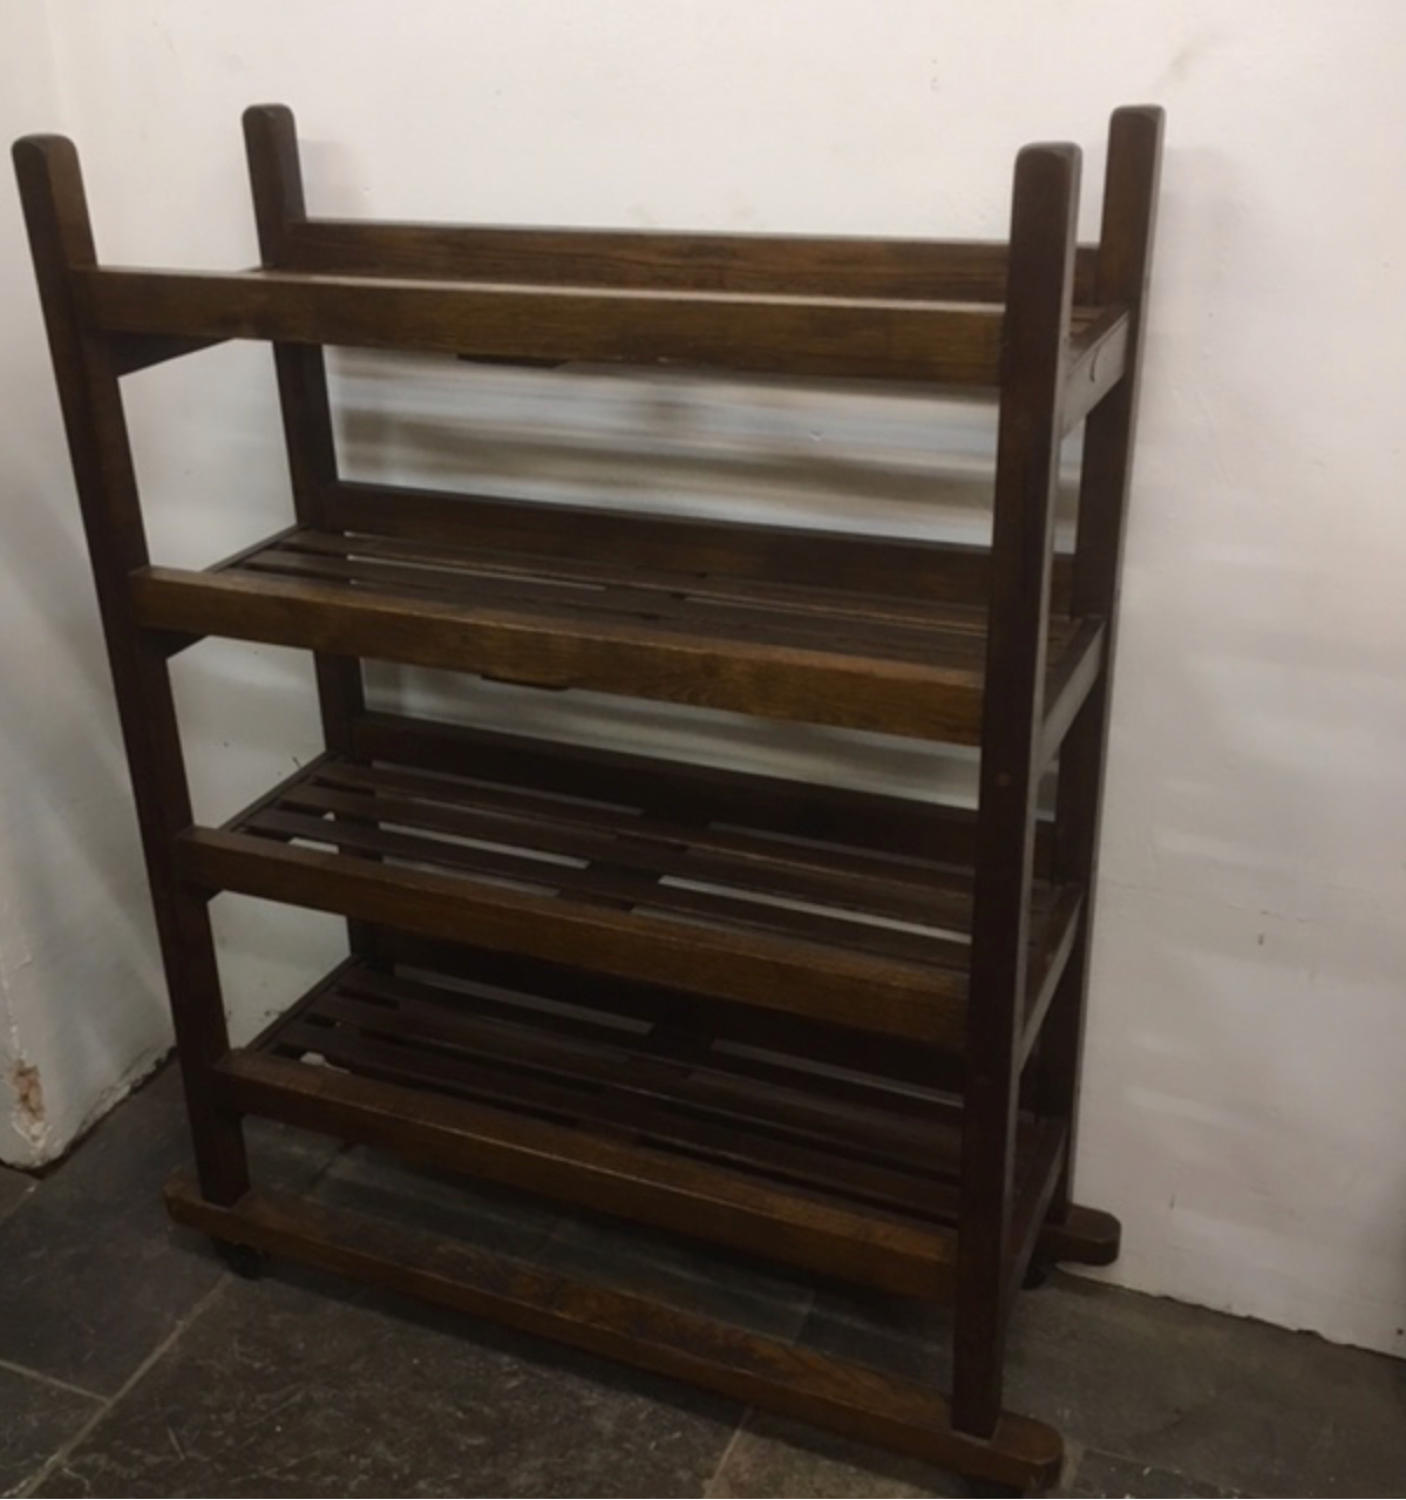 Old Oak shoe or bread factory trolley